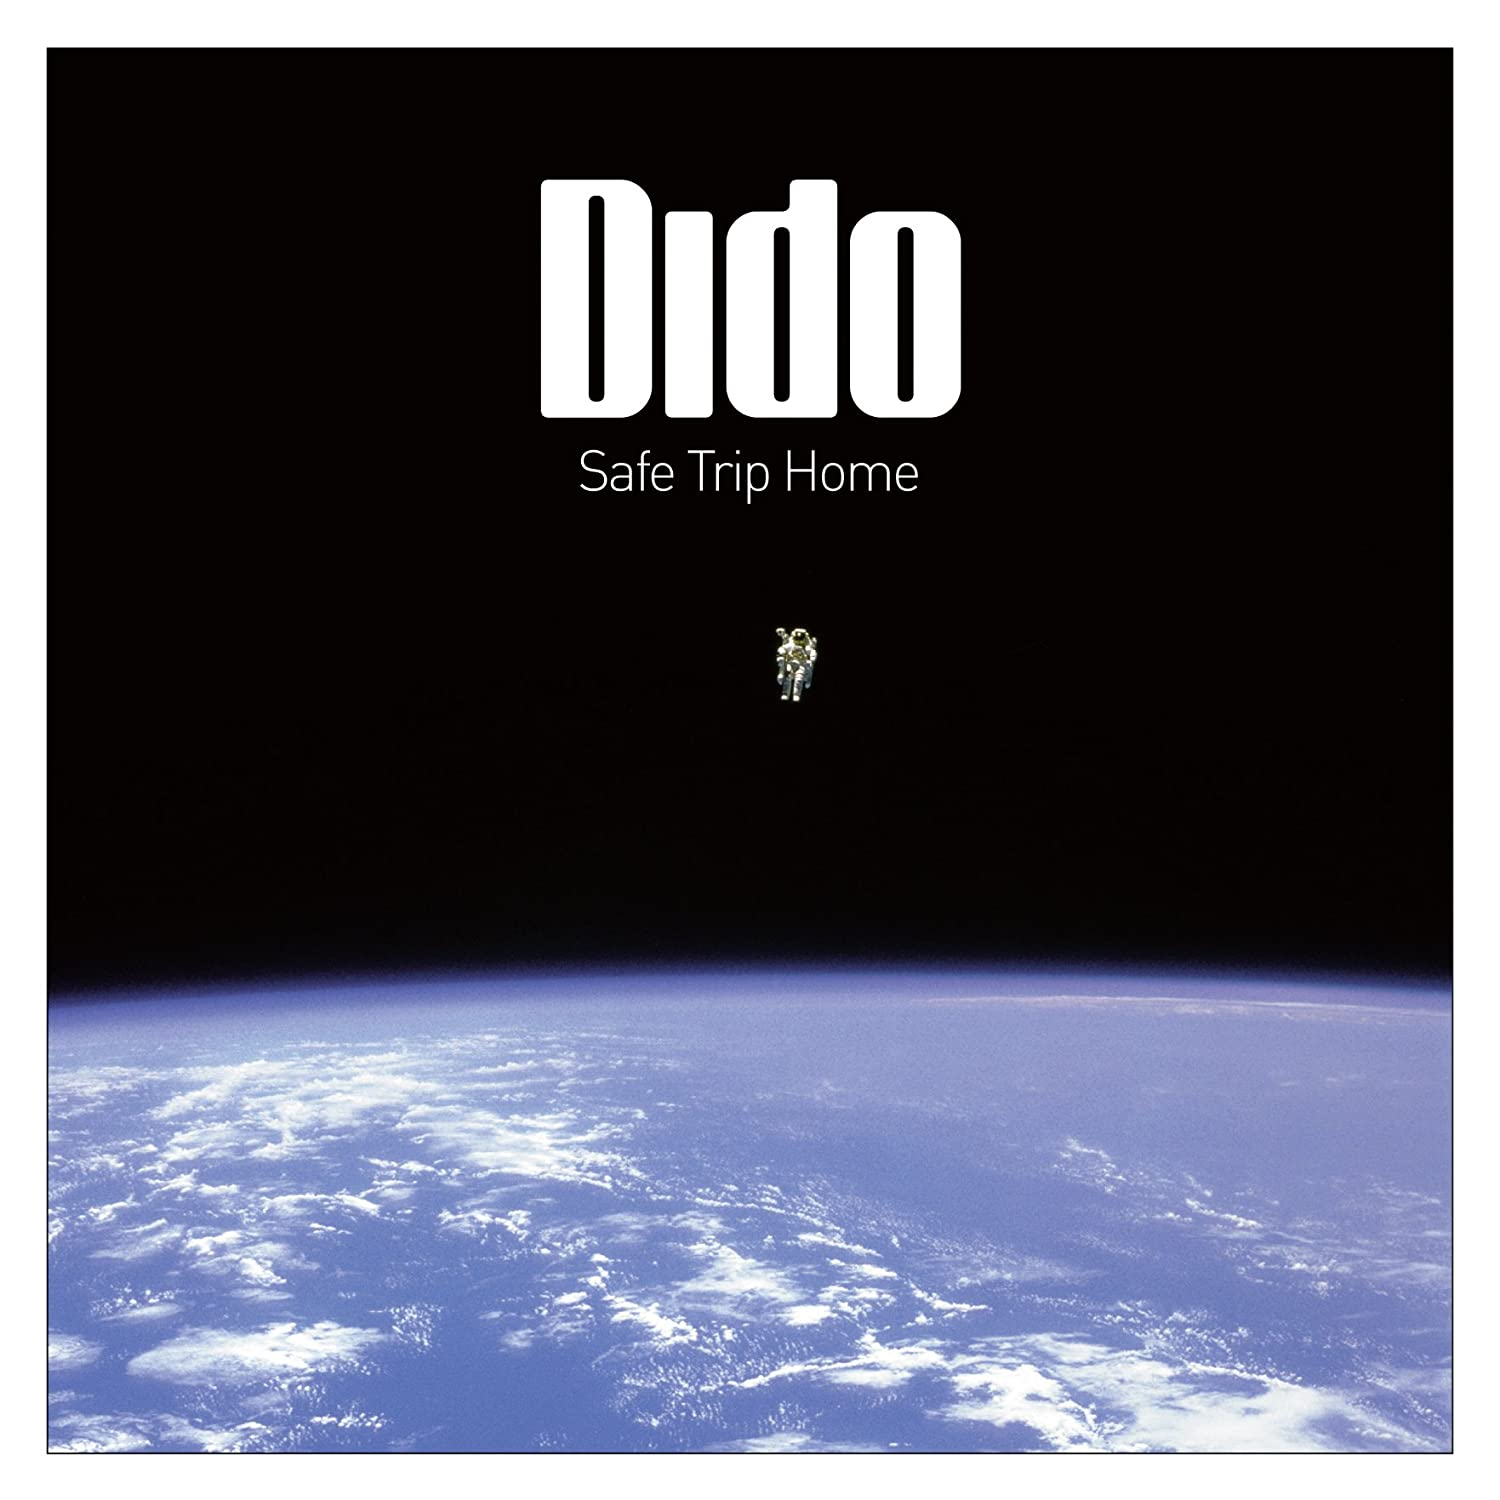 Dido, Safe Trip Home